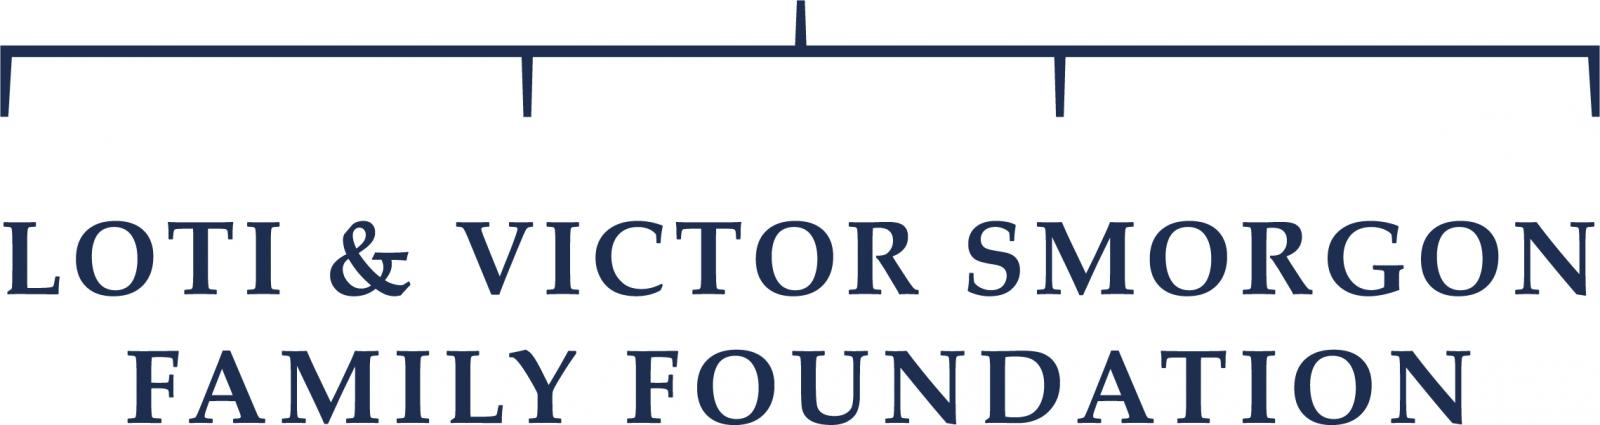 Loti and Victor Smorgon Family Foundation